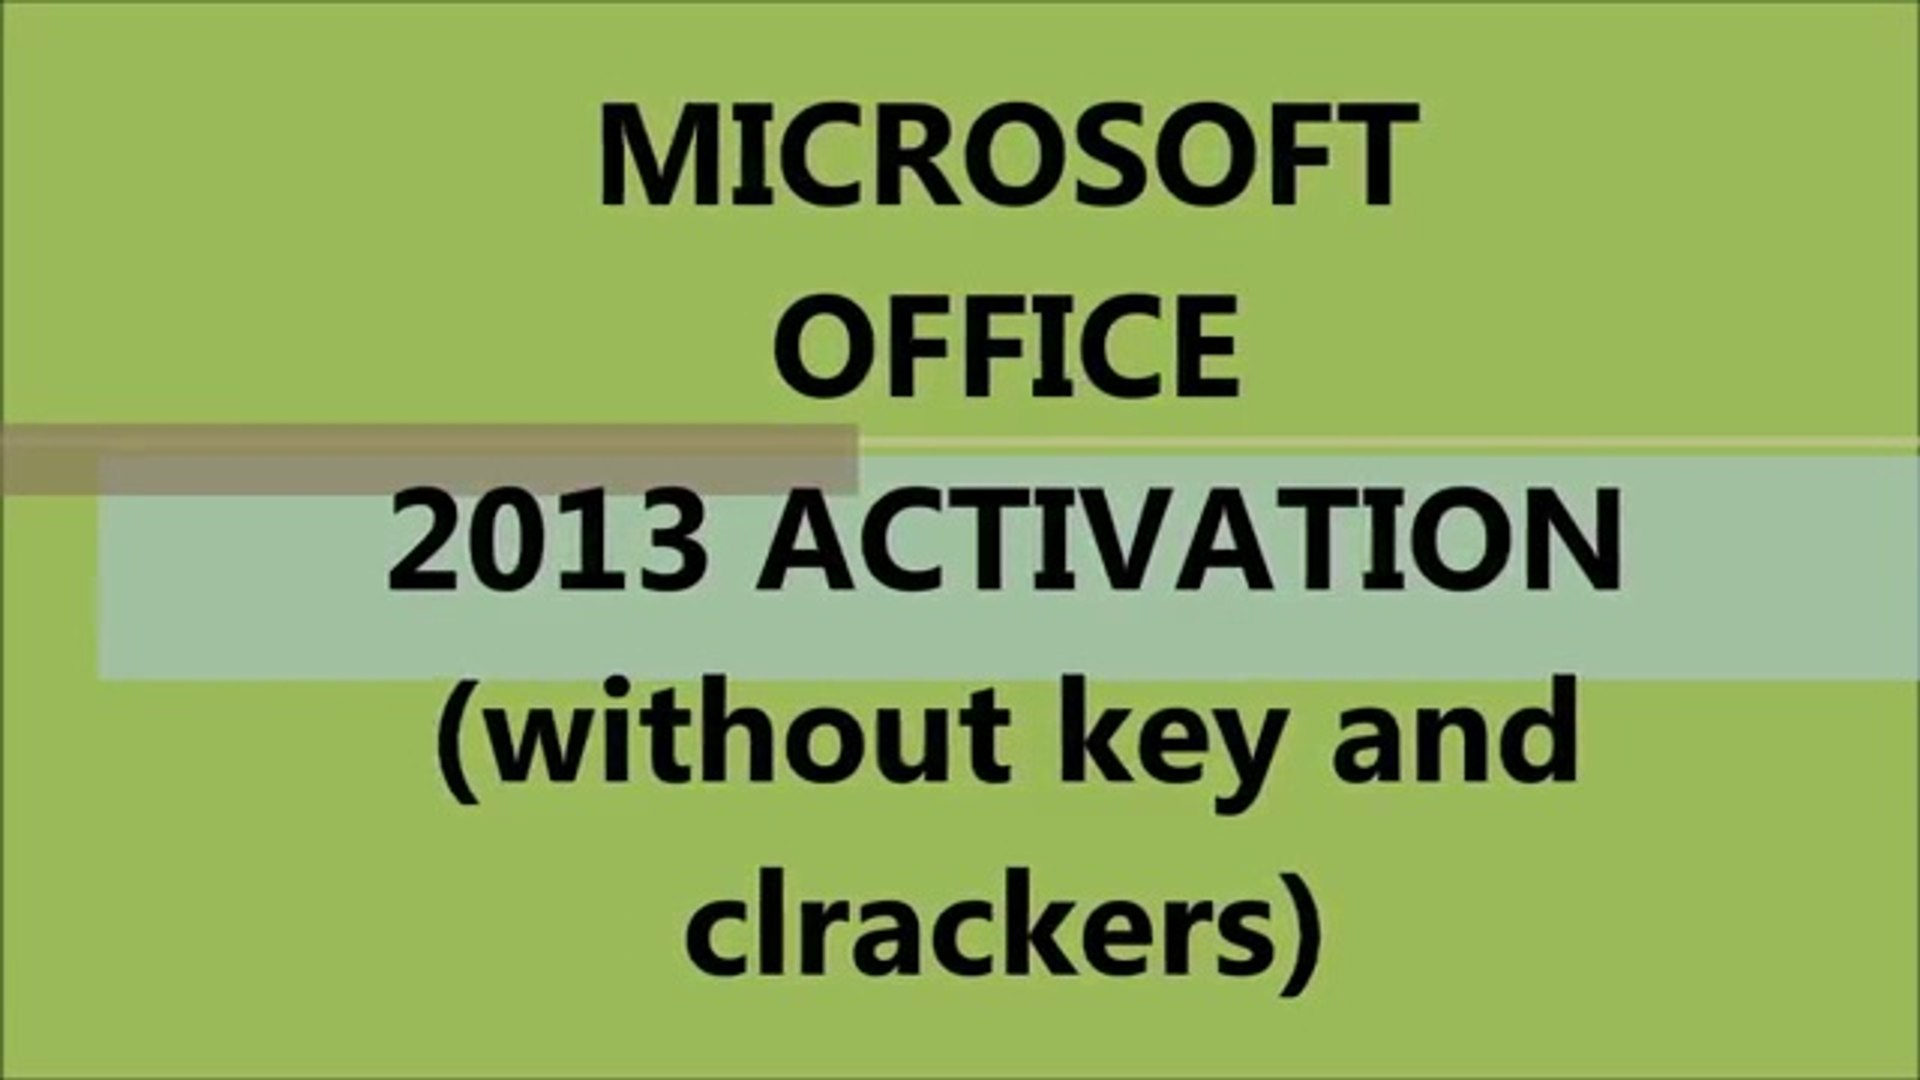 office home and student 2007 activation crack